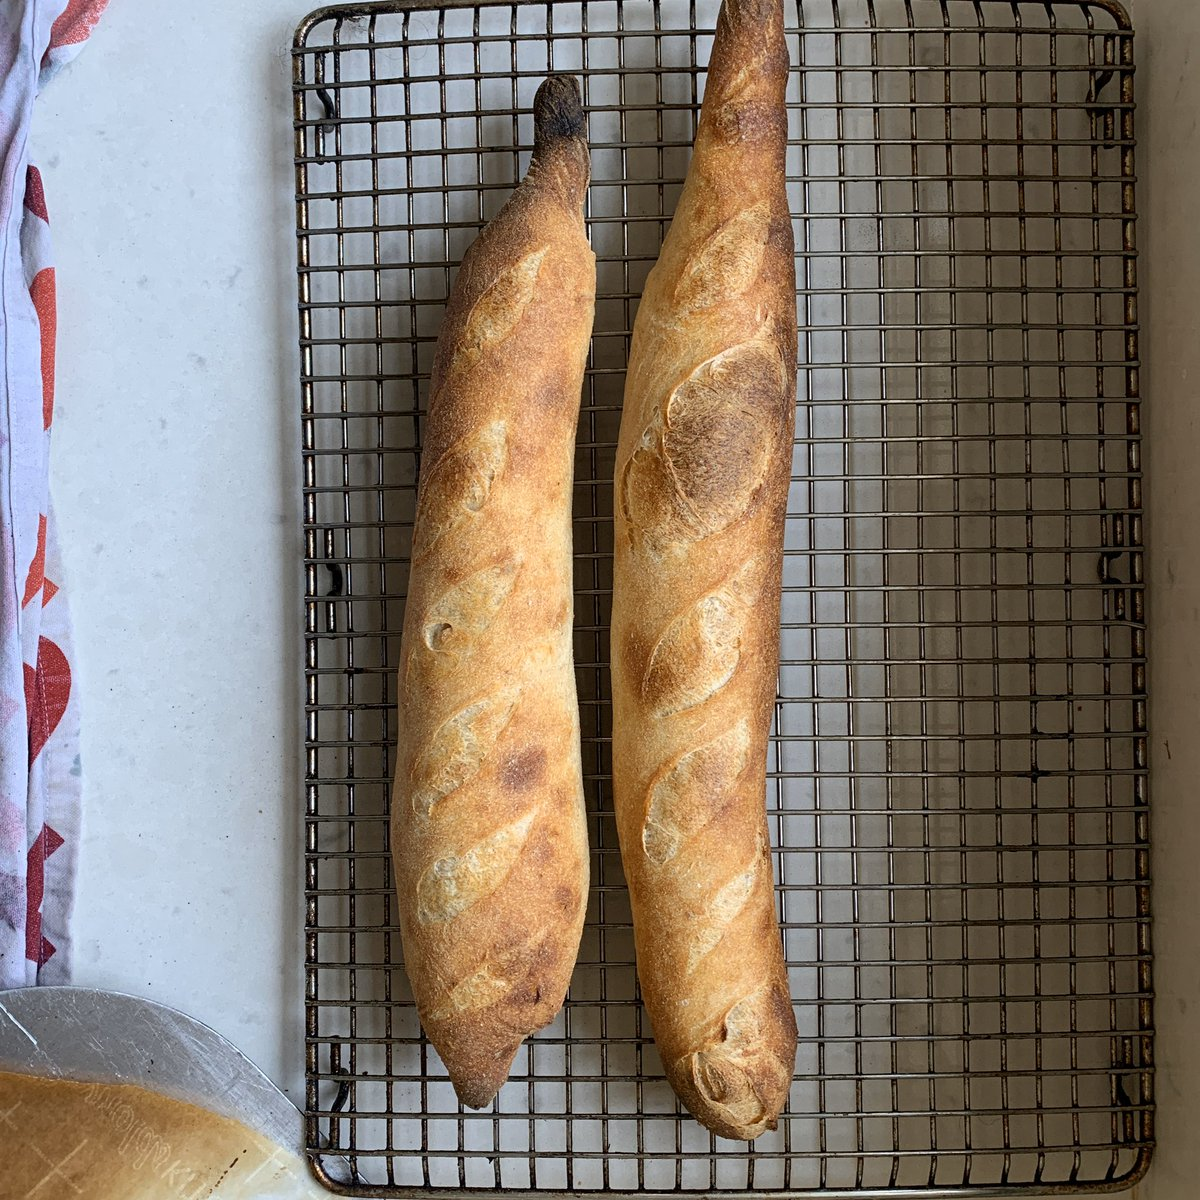 @cejarvis @tindsaylurner Made these with sourdough: